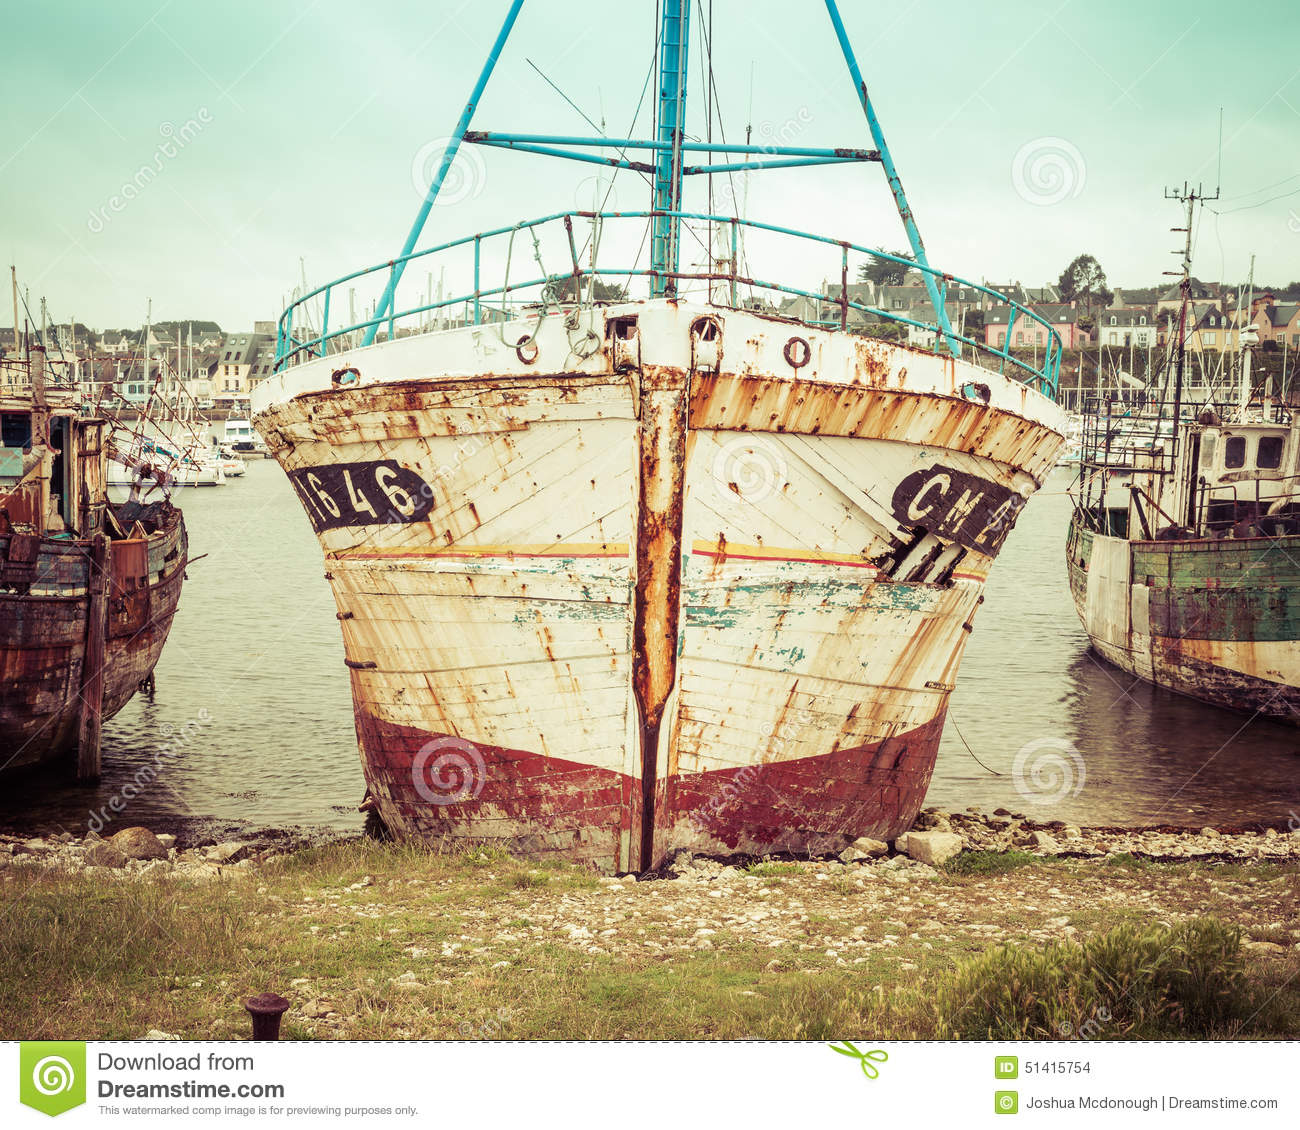 Old Fishing Boats On Beach: Old Vintage Fishing Boat Stock Photo. Image Of Fading